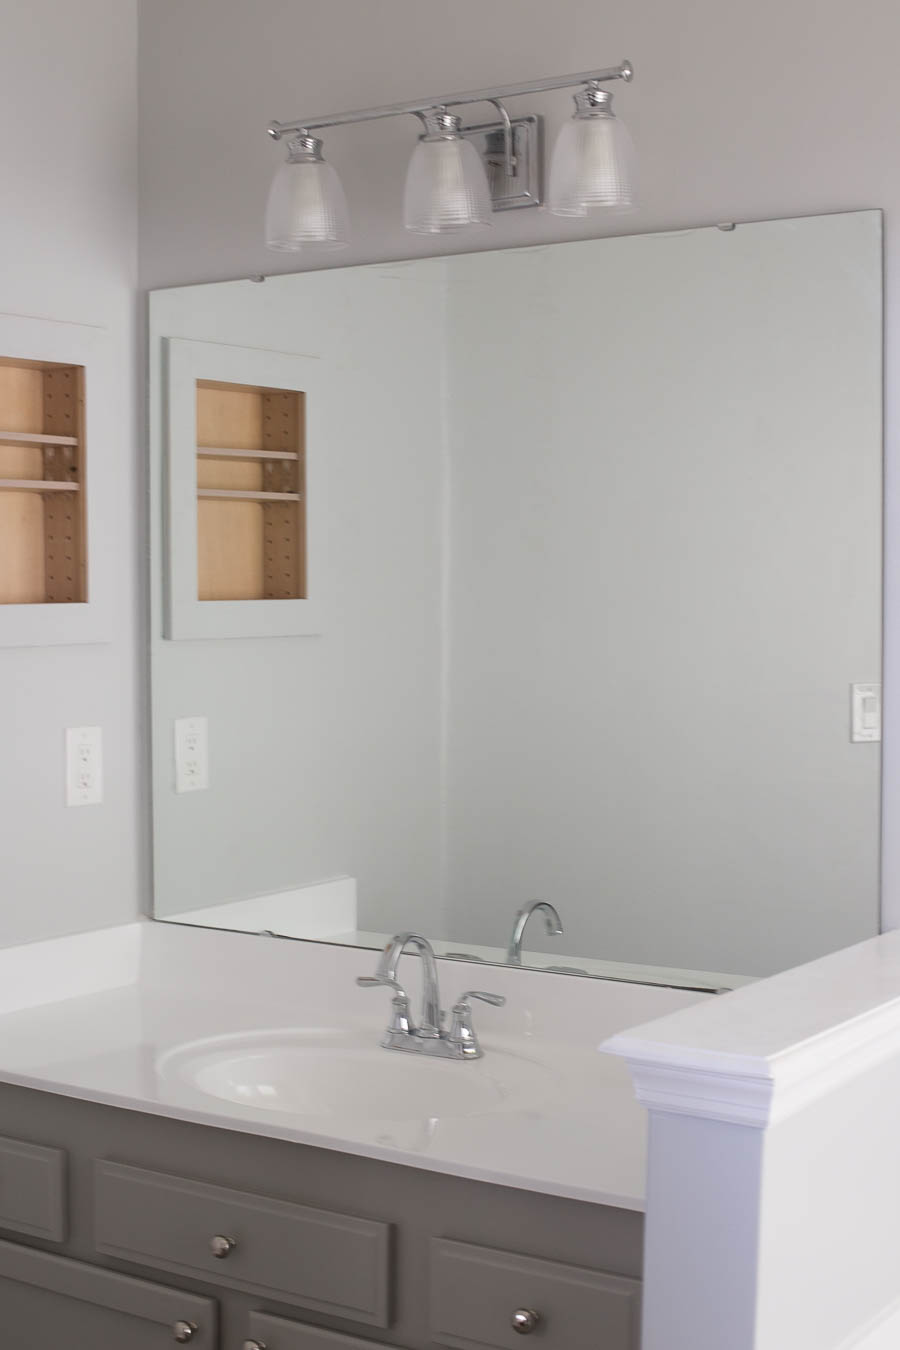 Inspirational How to frame a bathroom mirror in an afternoon for less than